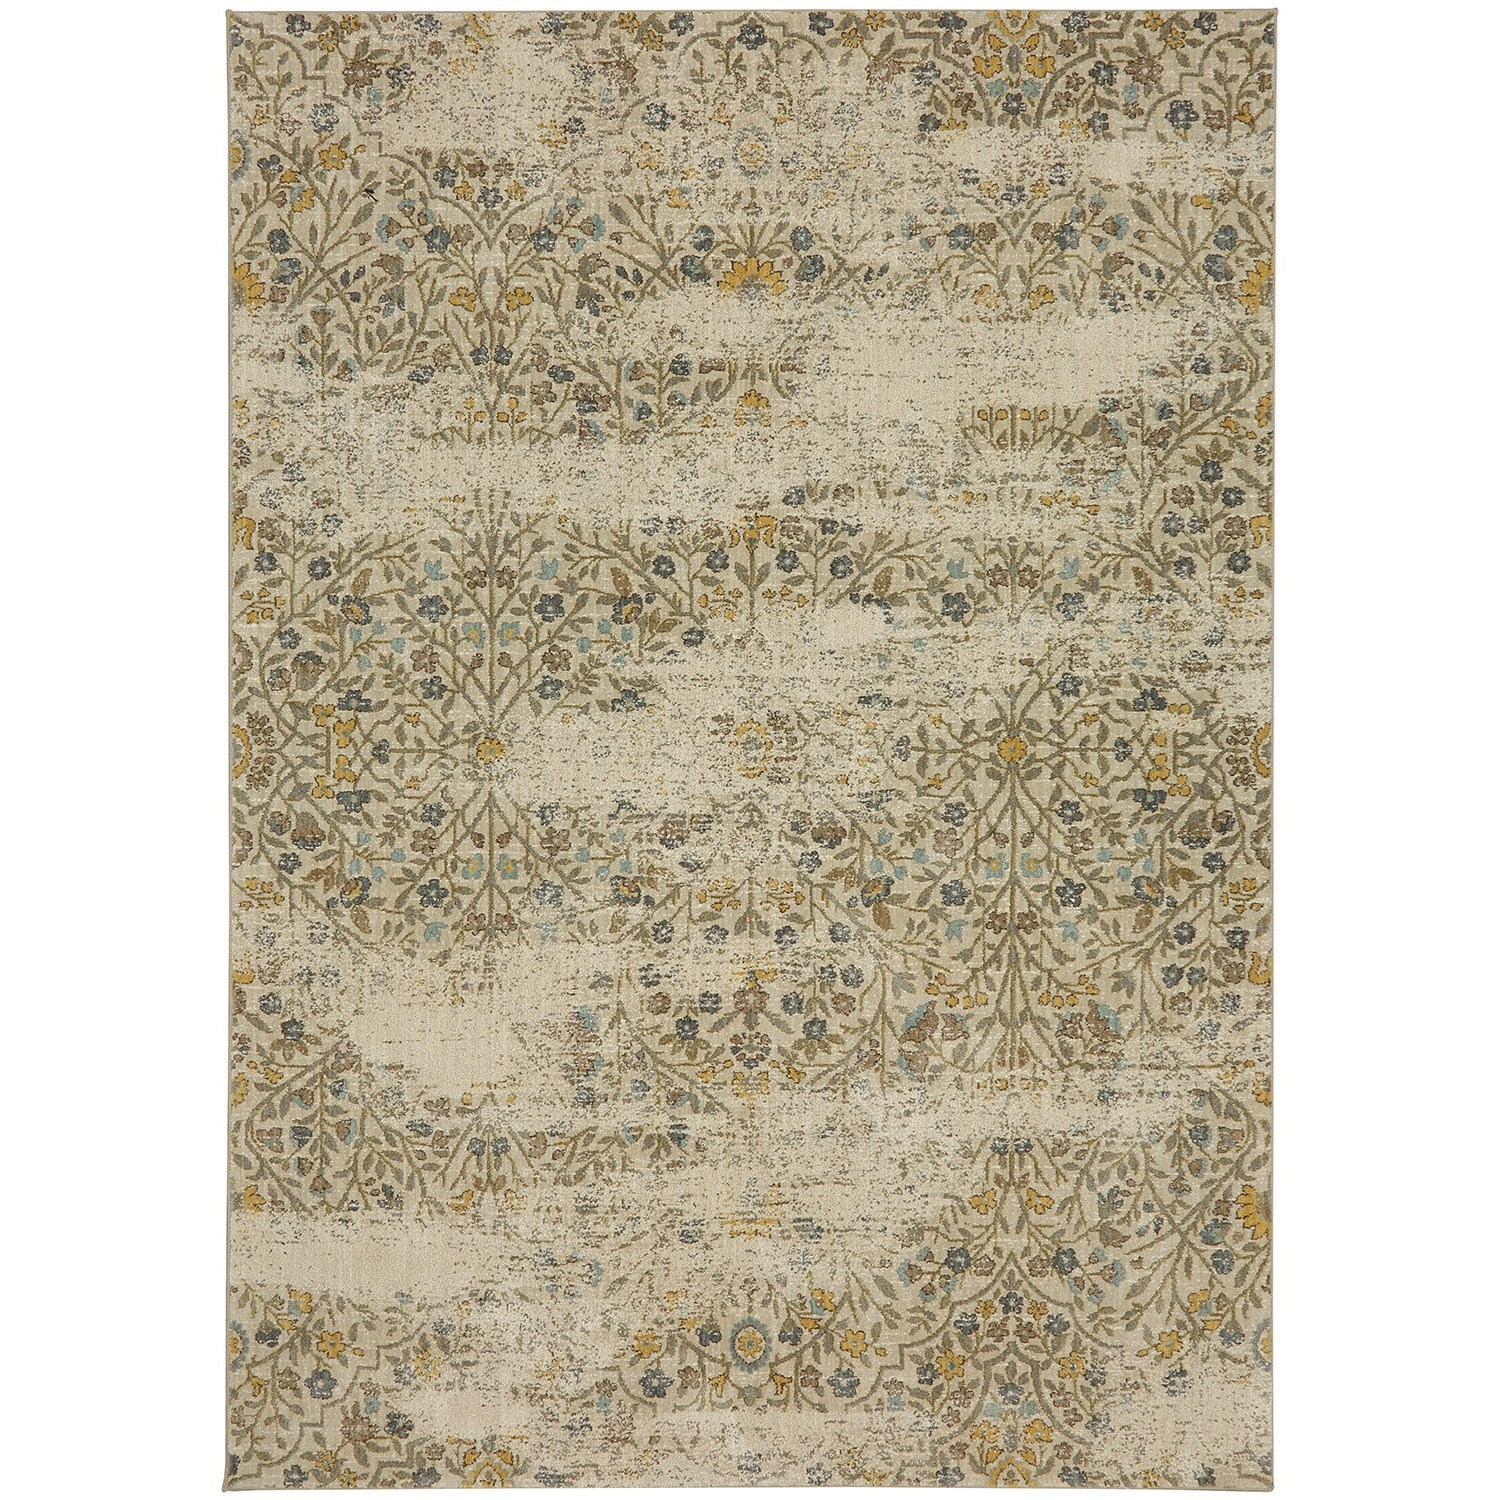 """Touchstone 5' 3""""x7' 10"""" Rectangle Floral Area Rug by Karastan Rugs at Darvin Furniture"""